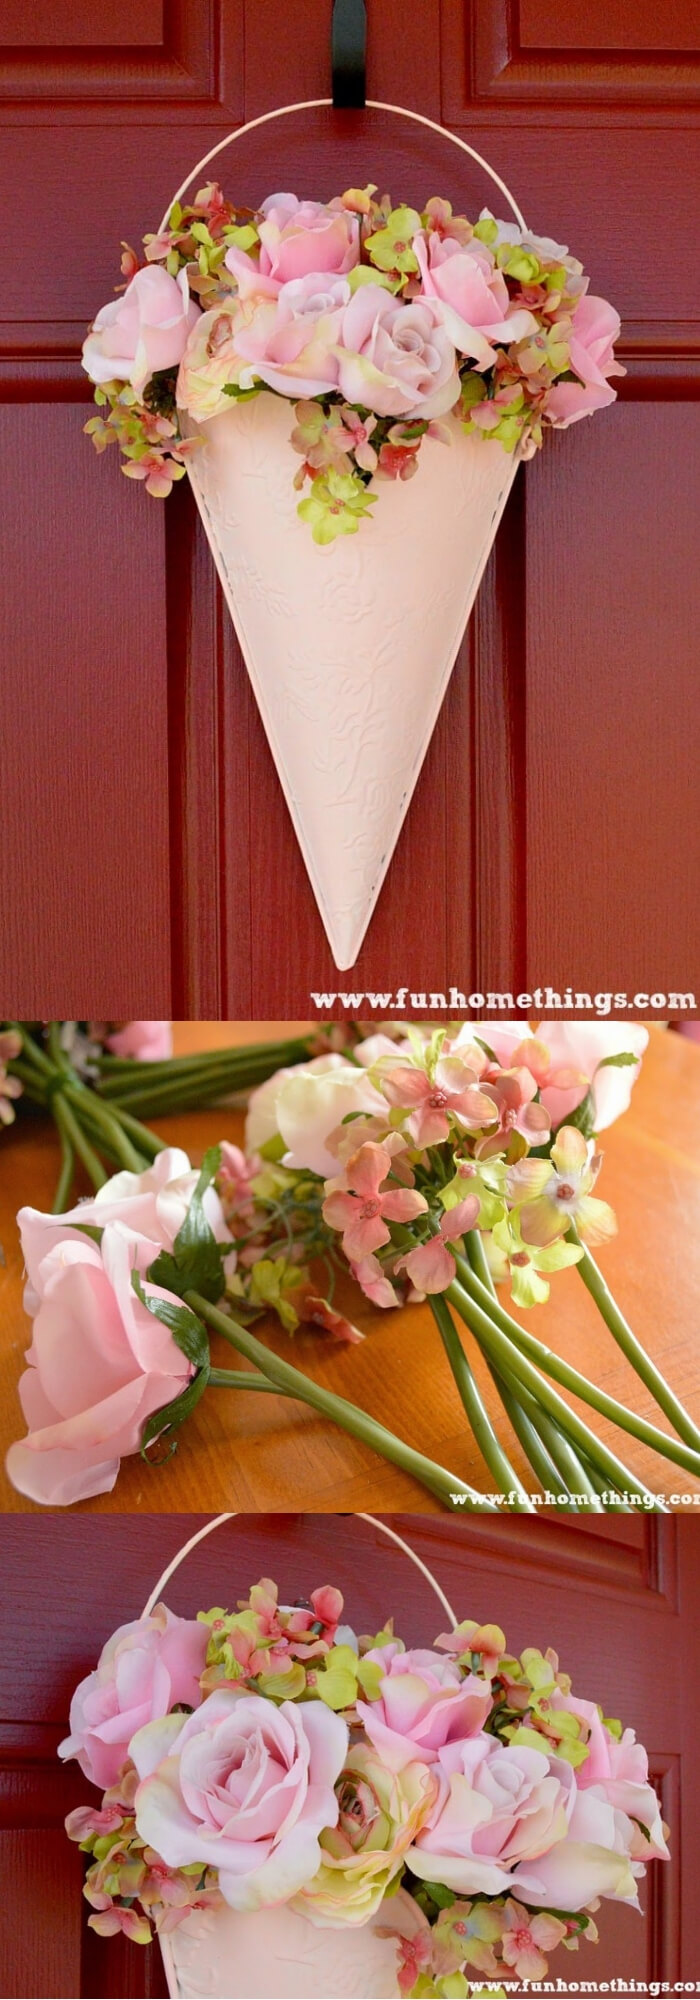 Easy and Simple DIY Spring Wreath Ideas | Spring Floral Door Hanging